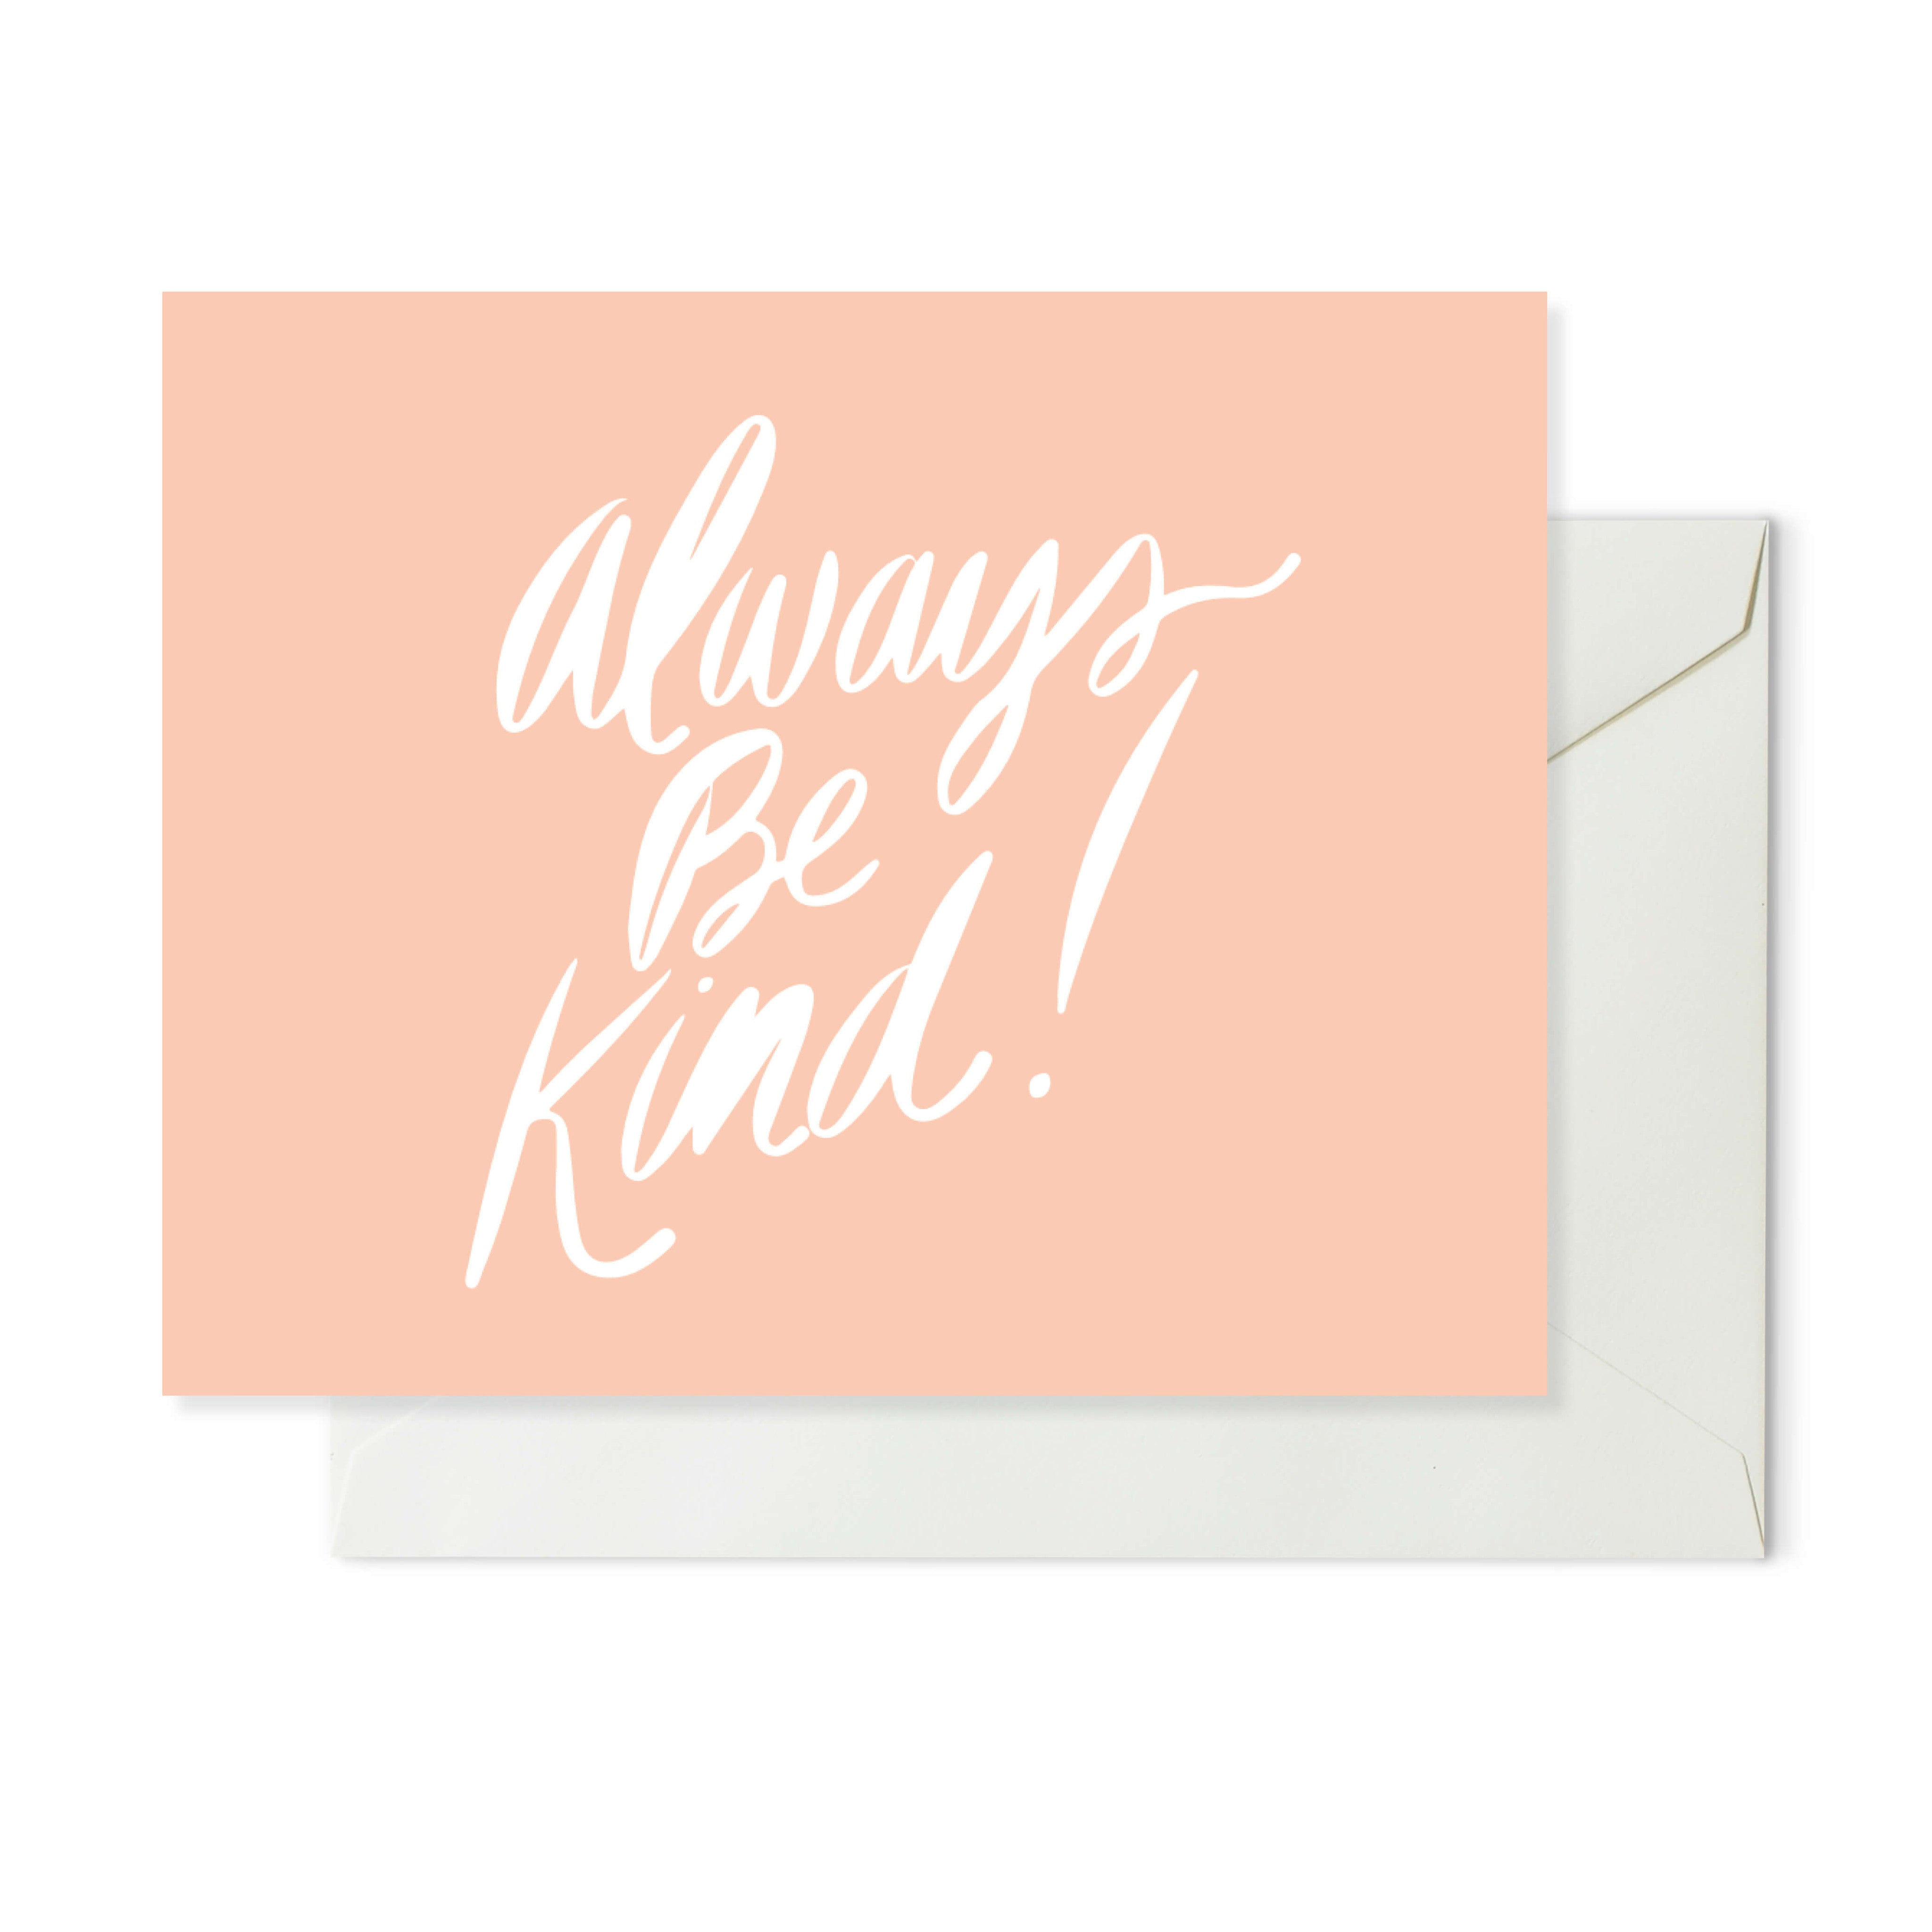 Moon and Lola xx Thimblepress - Always Be Kind Note Card